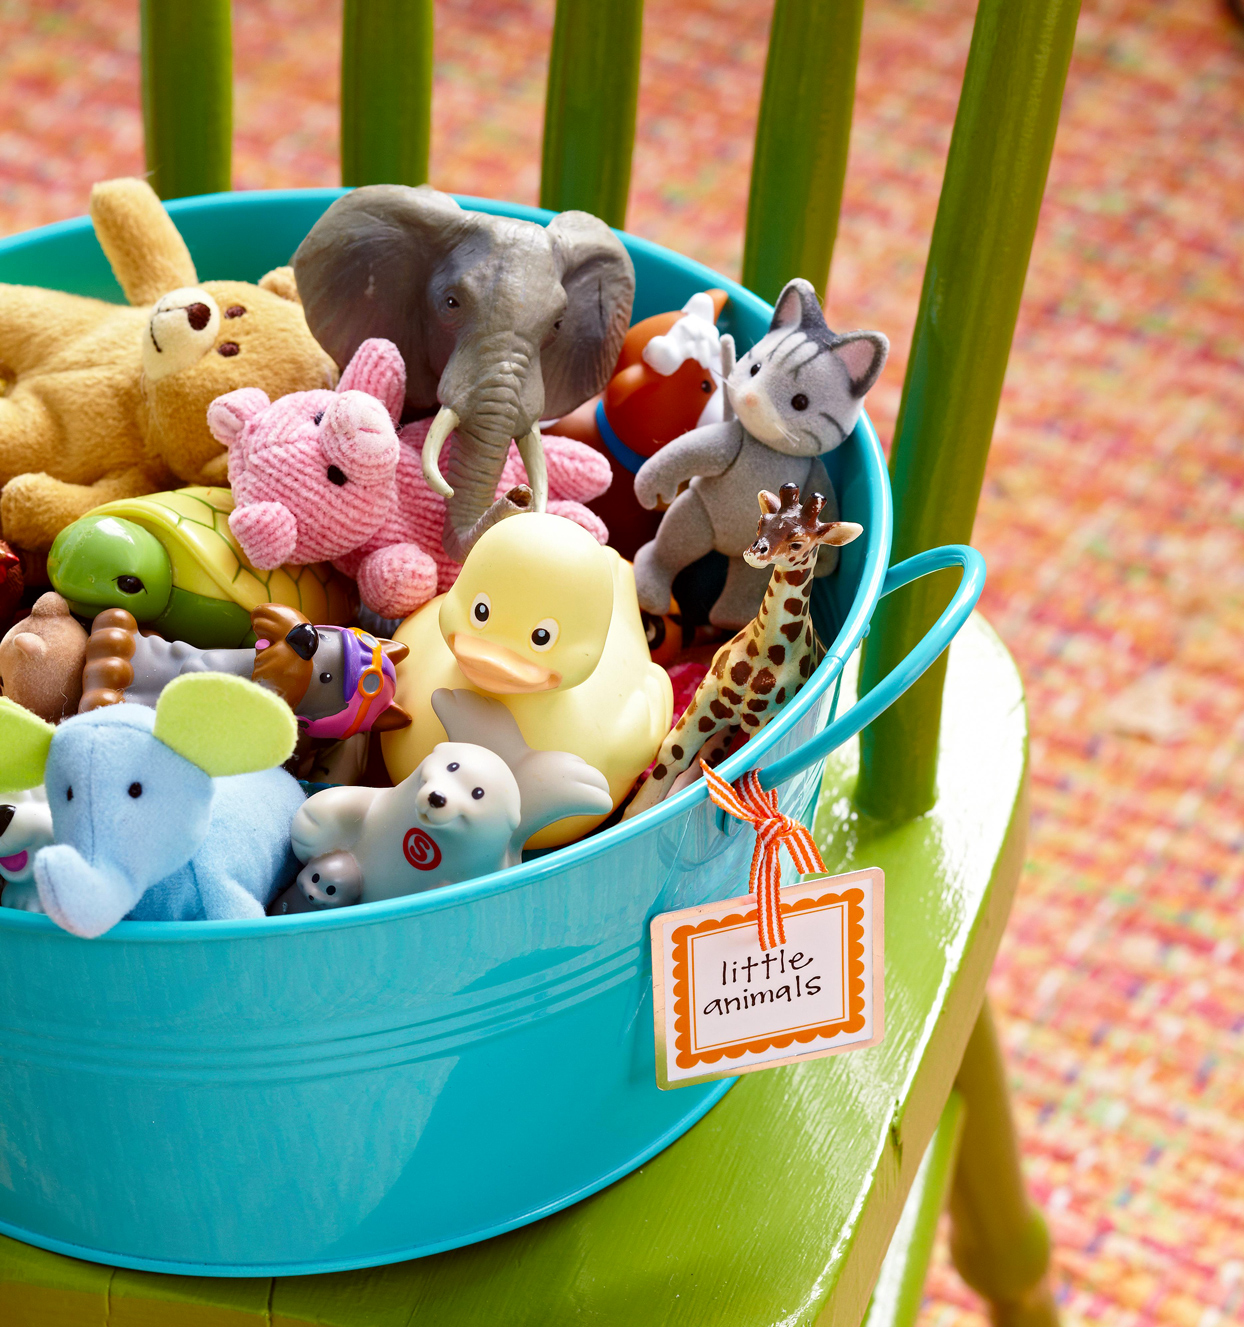 labeled animal toy bin